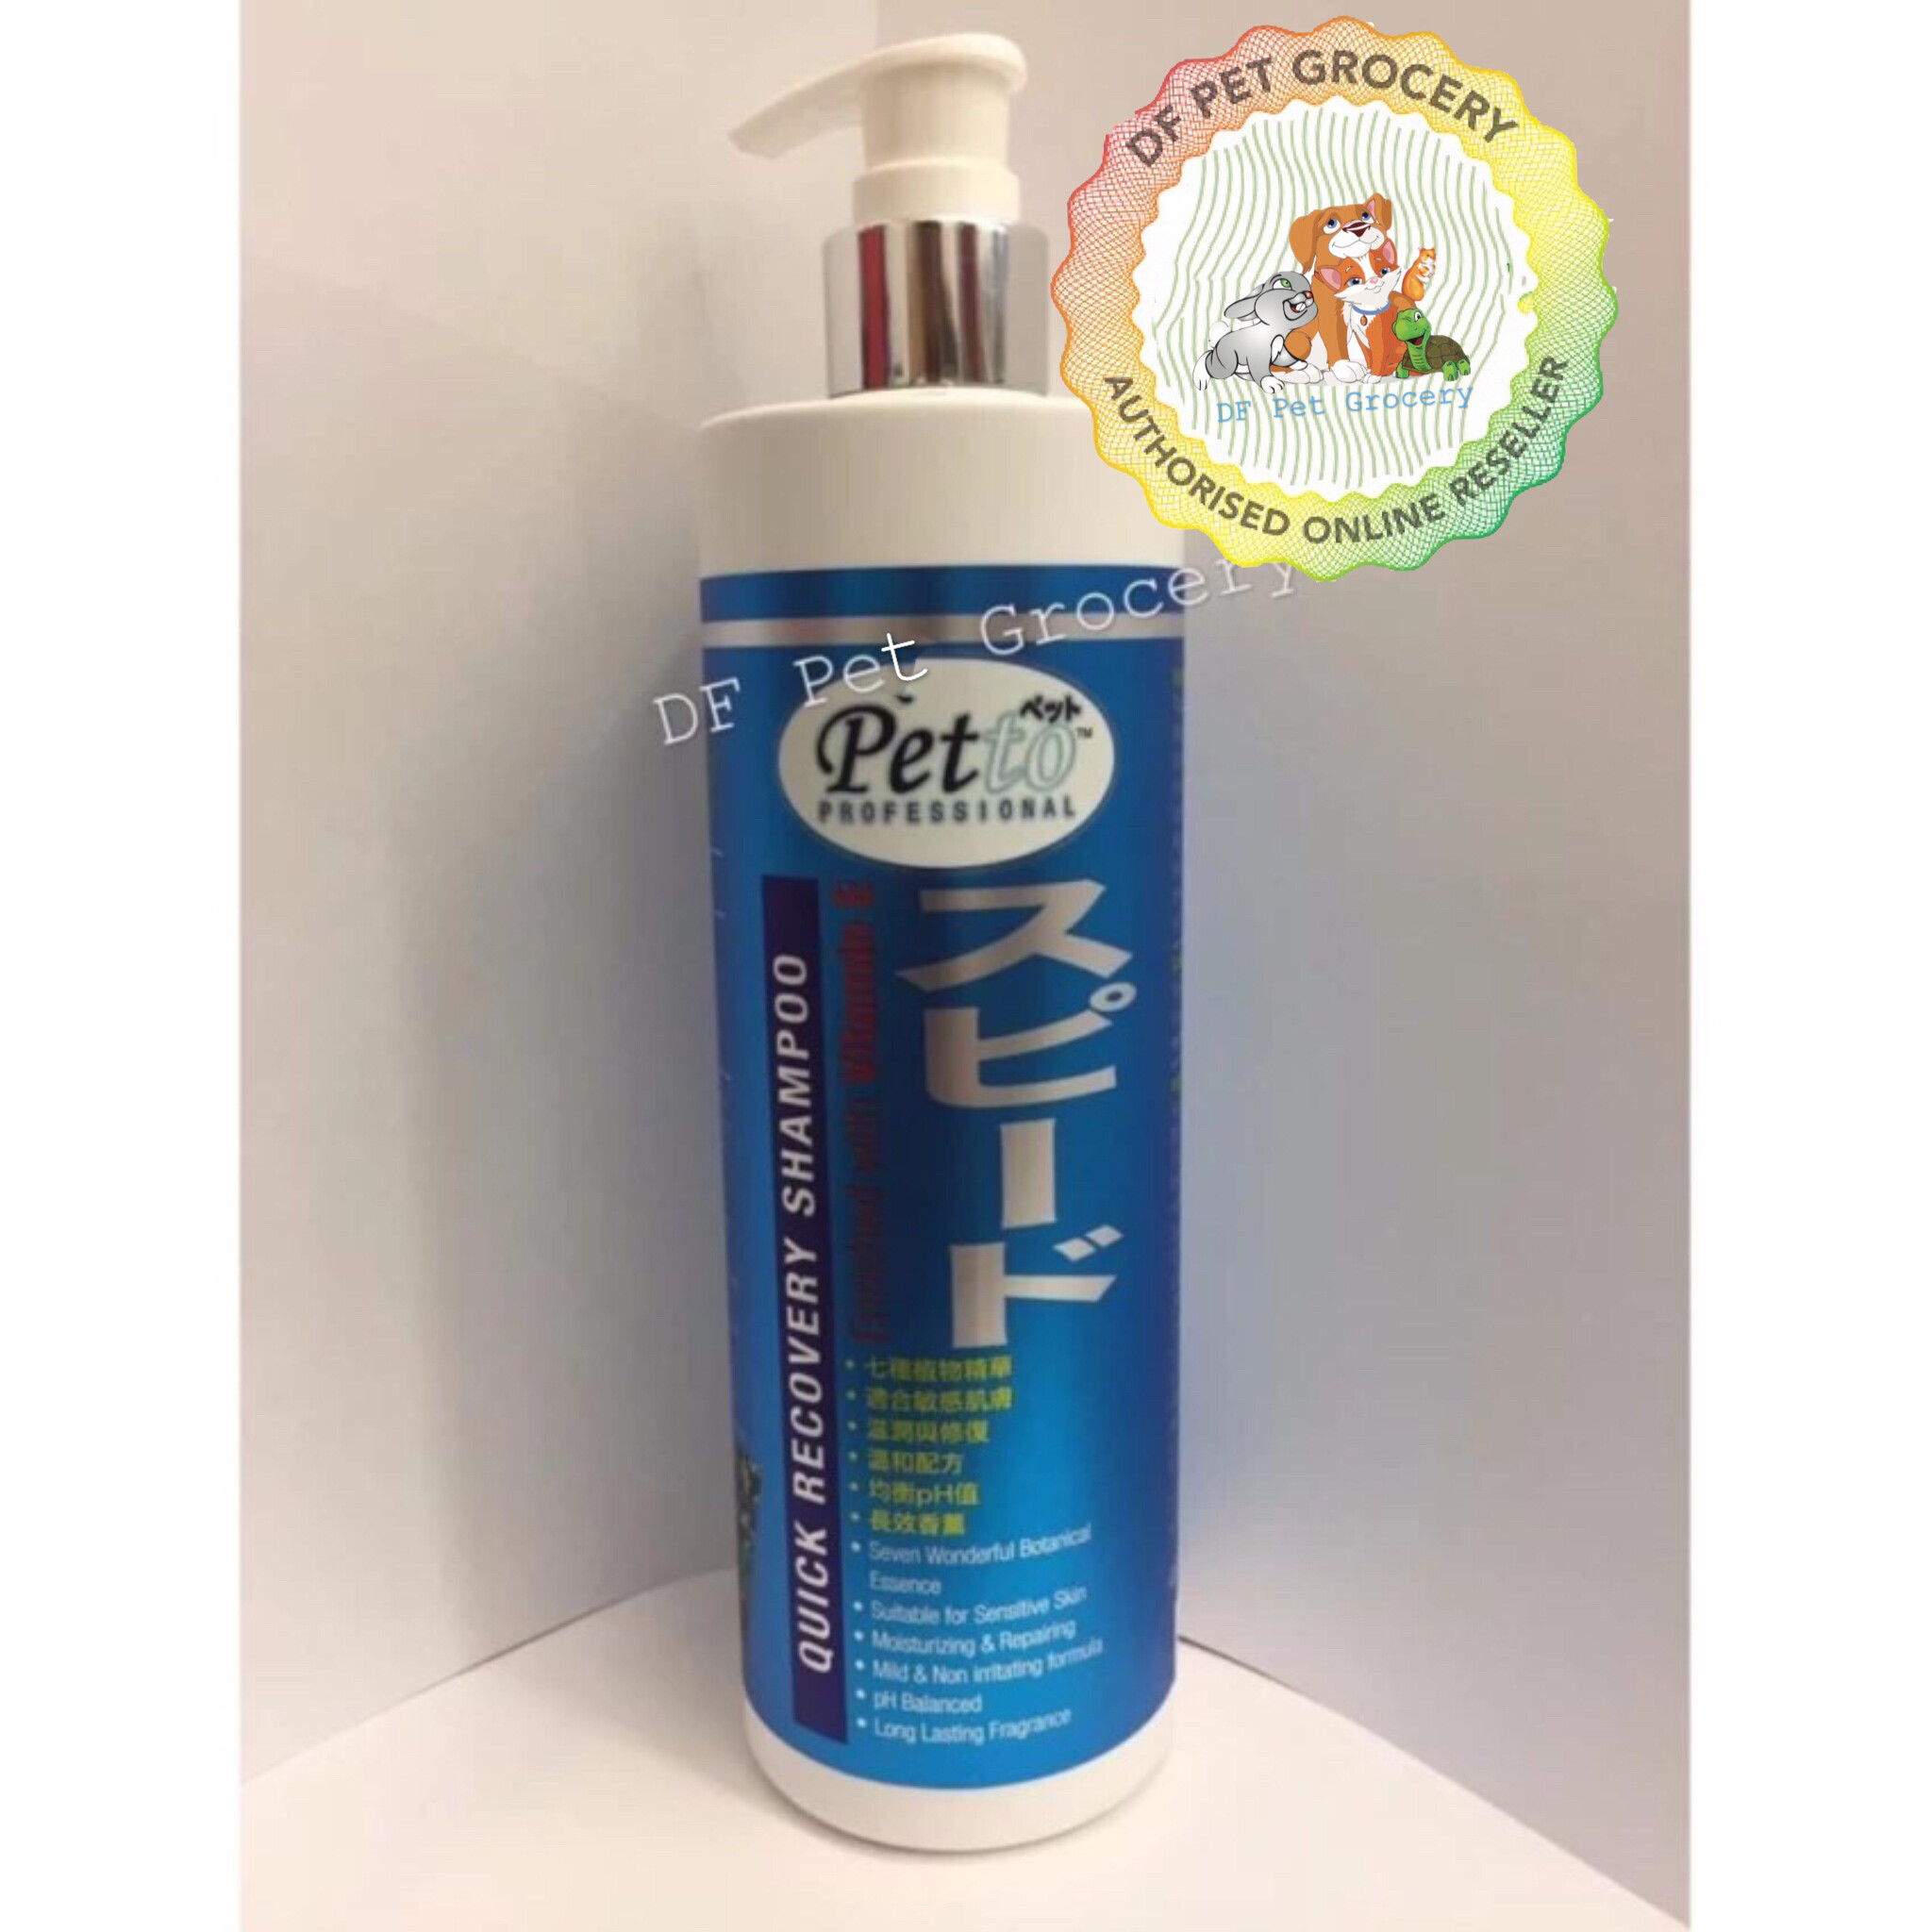 Petto Professional Quick Recovery Shampoo 400ml - Shampoo For Cat and Dog